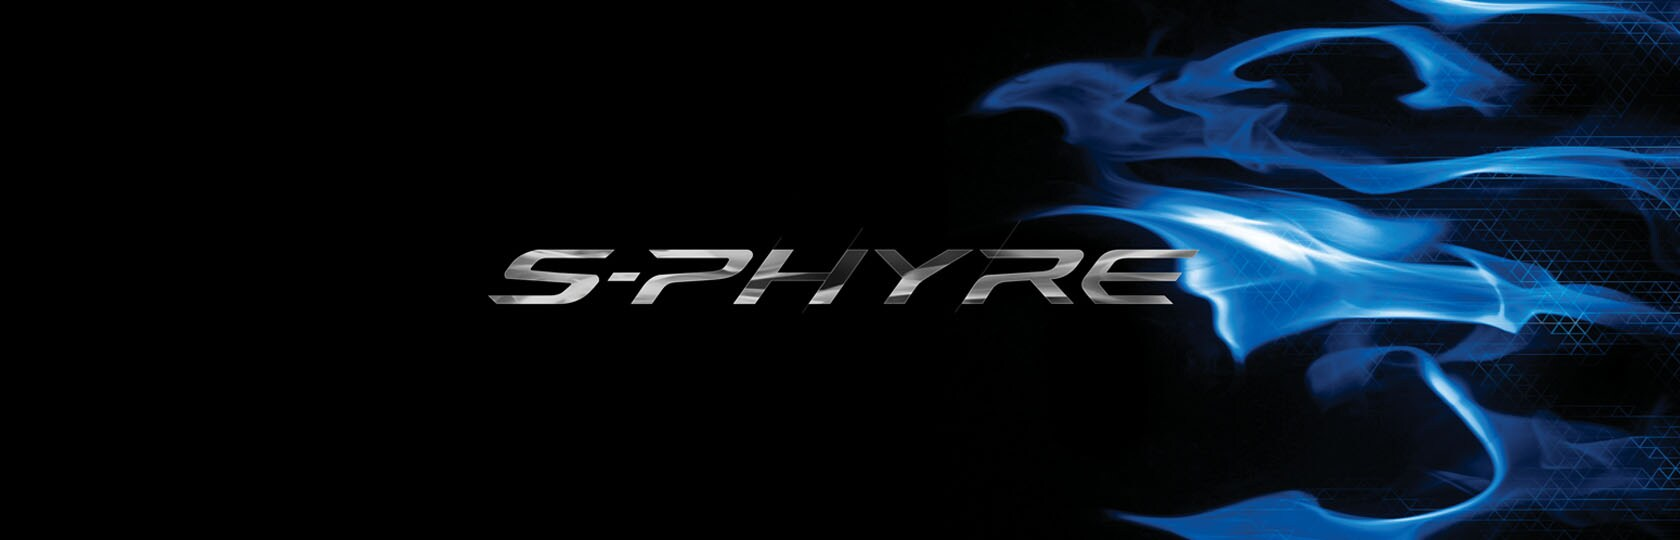 s-phyre_product_hero-image